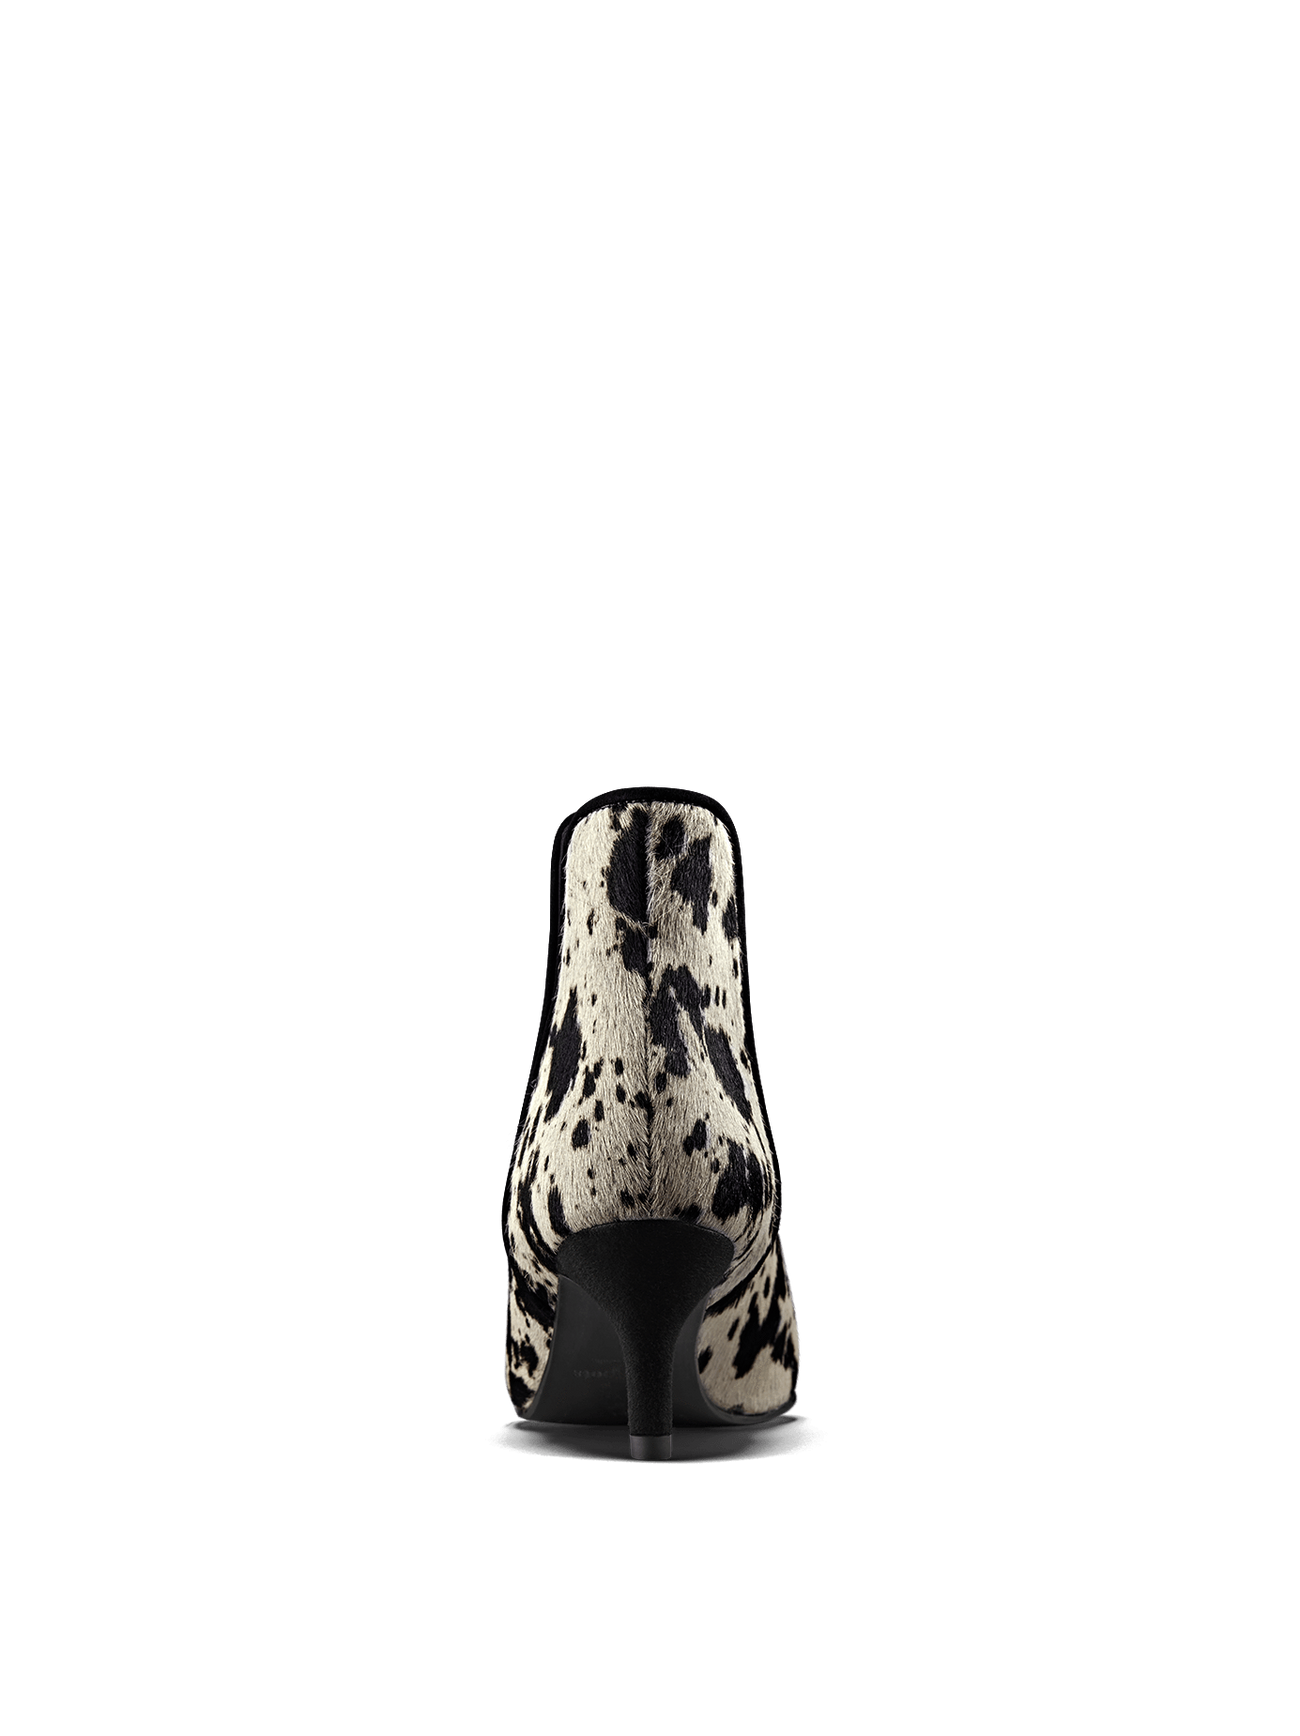 The kitten heel on Somerton in cow print leather will take you from day to night.